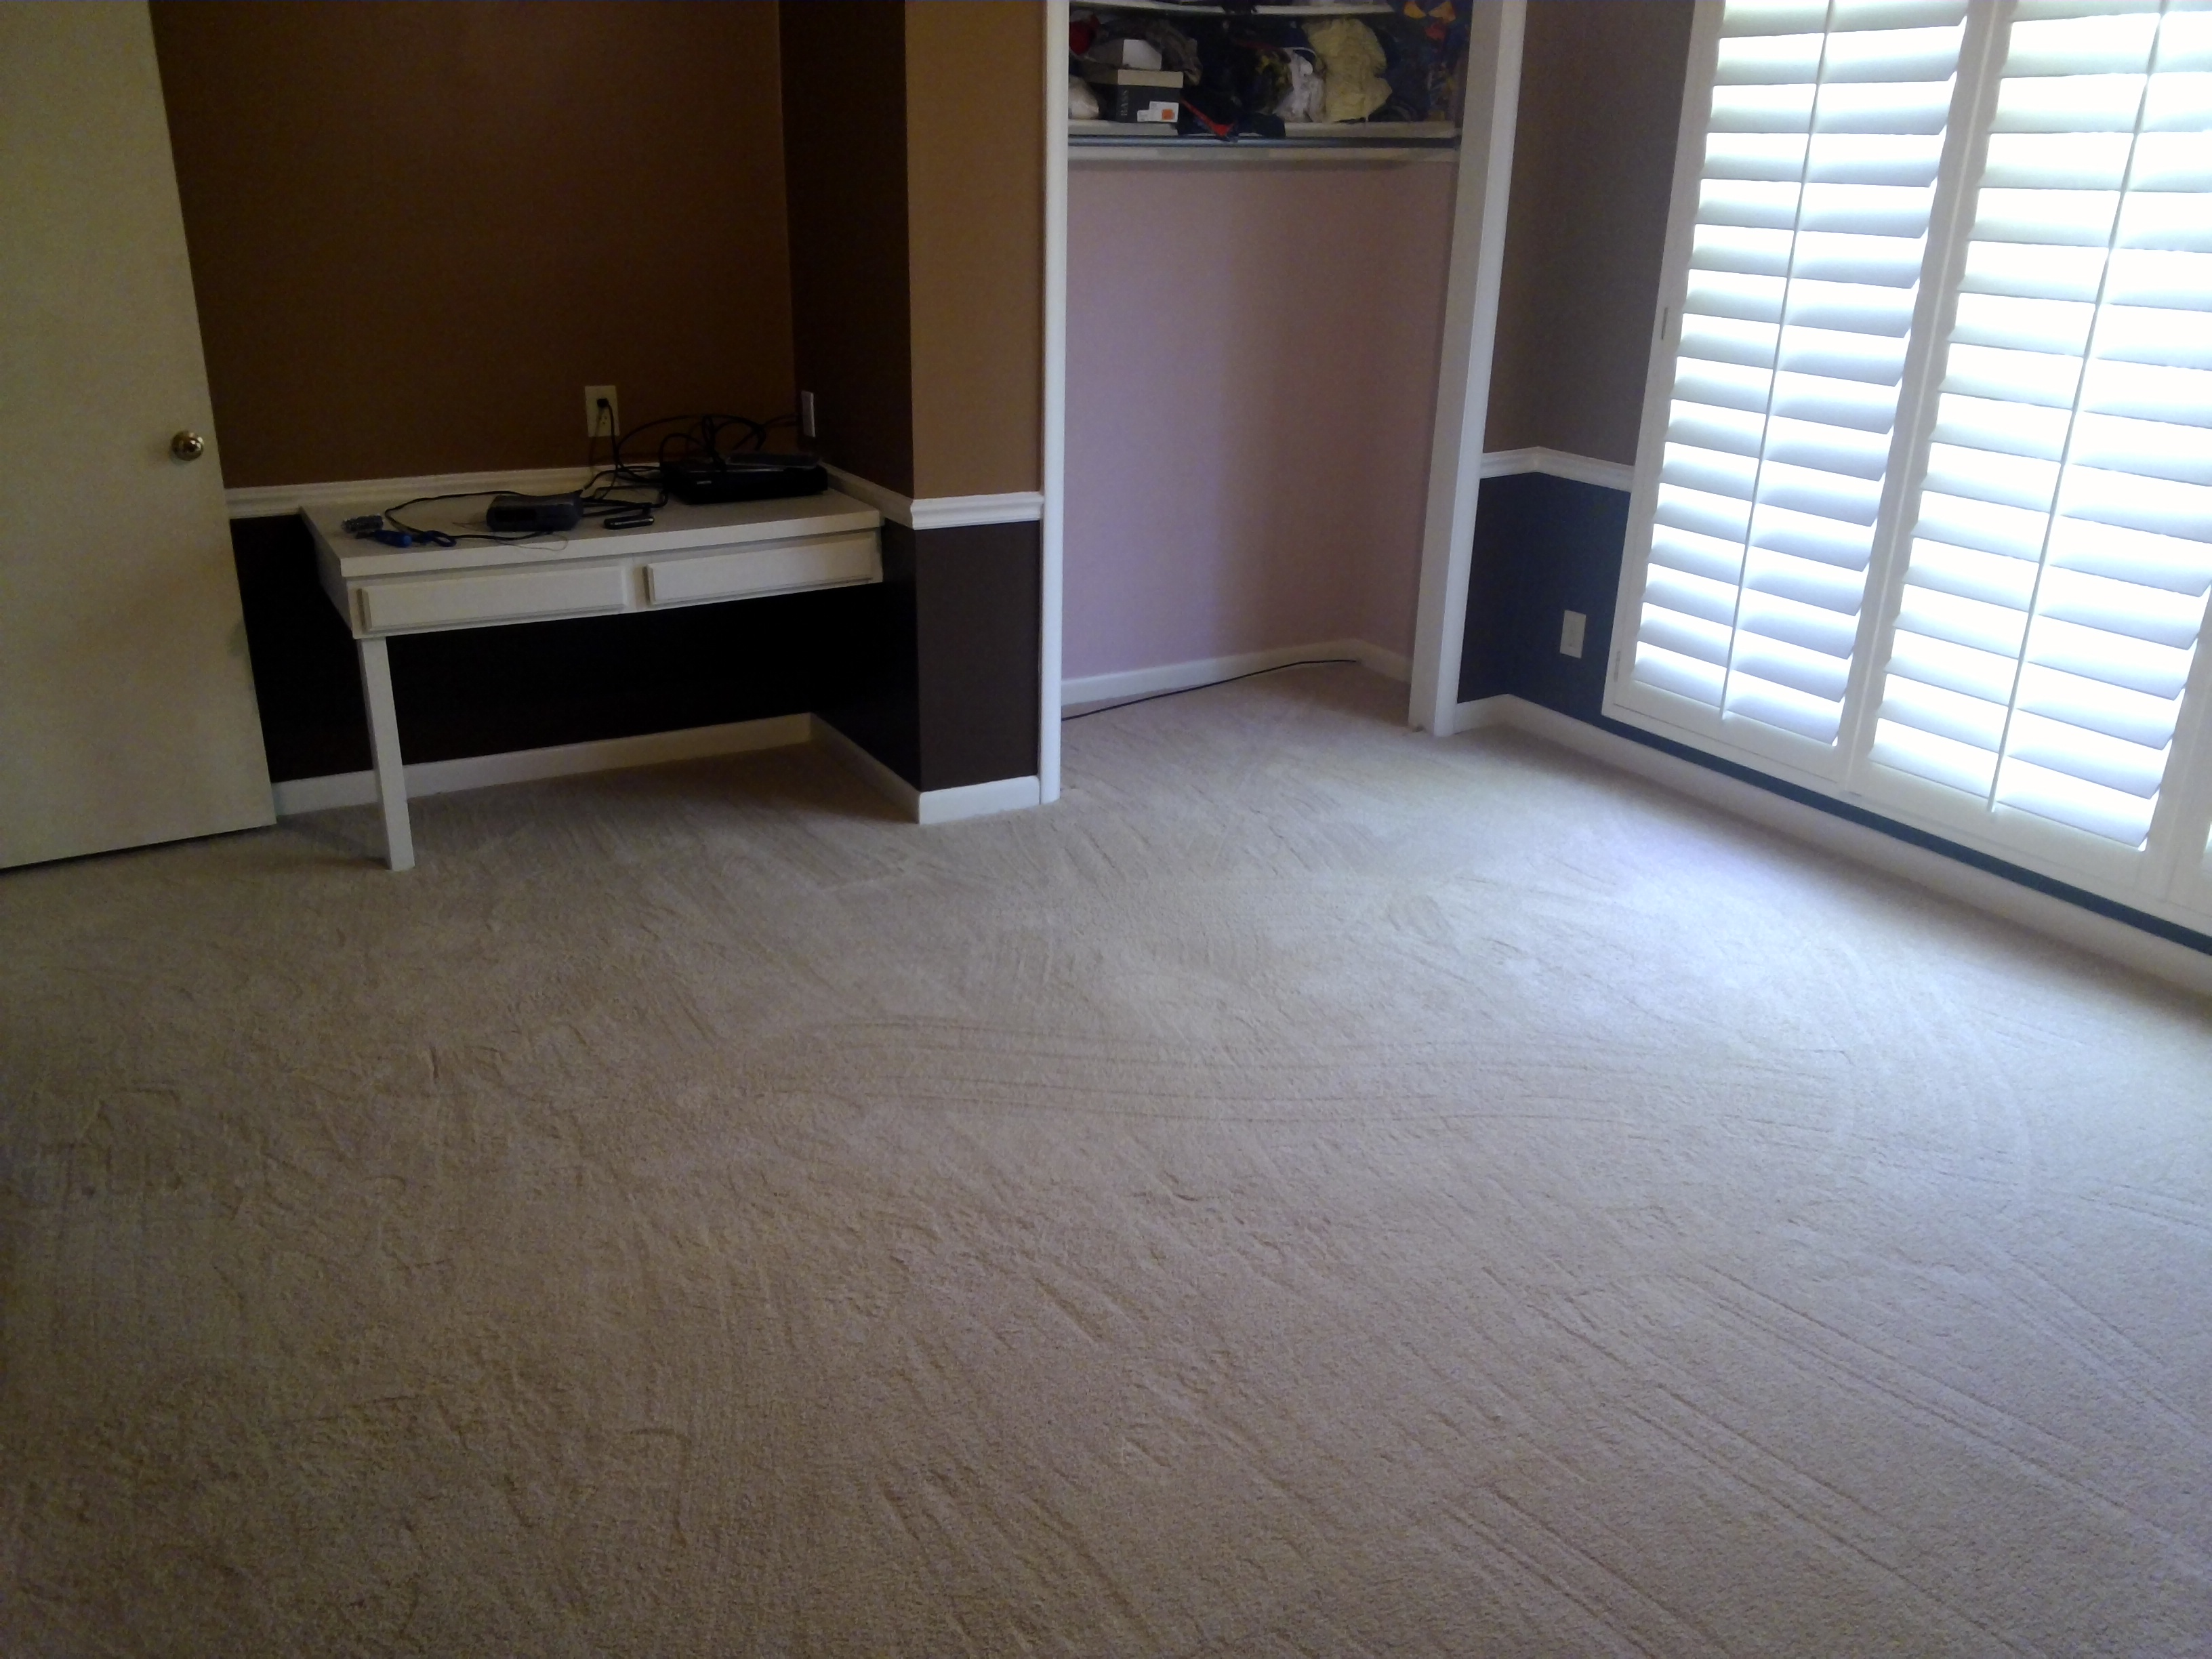 Common carpet cleaning shampooing mistakes homeadvisor do it yourself carpet cleaning mistakes solutioingenieria Gallery